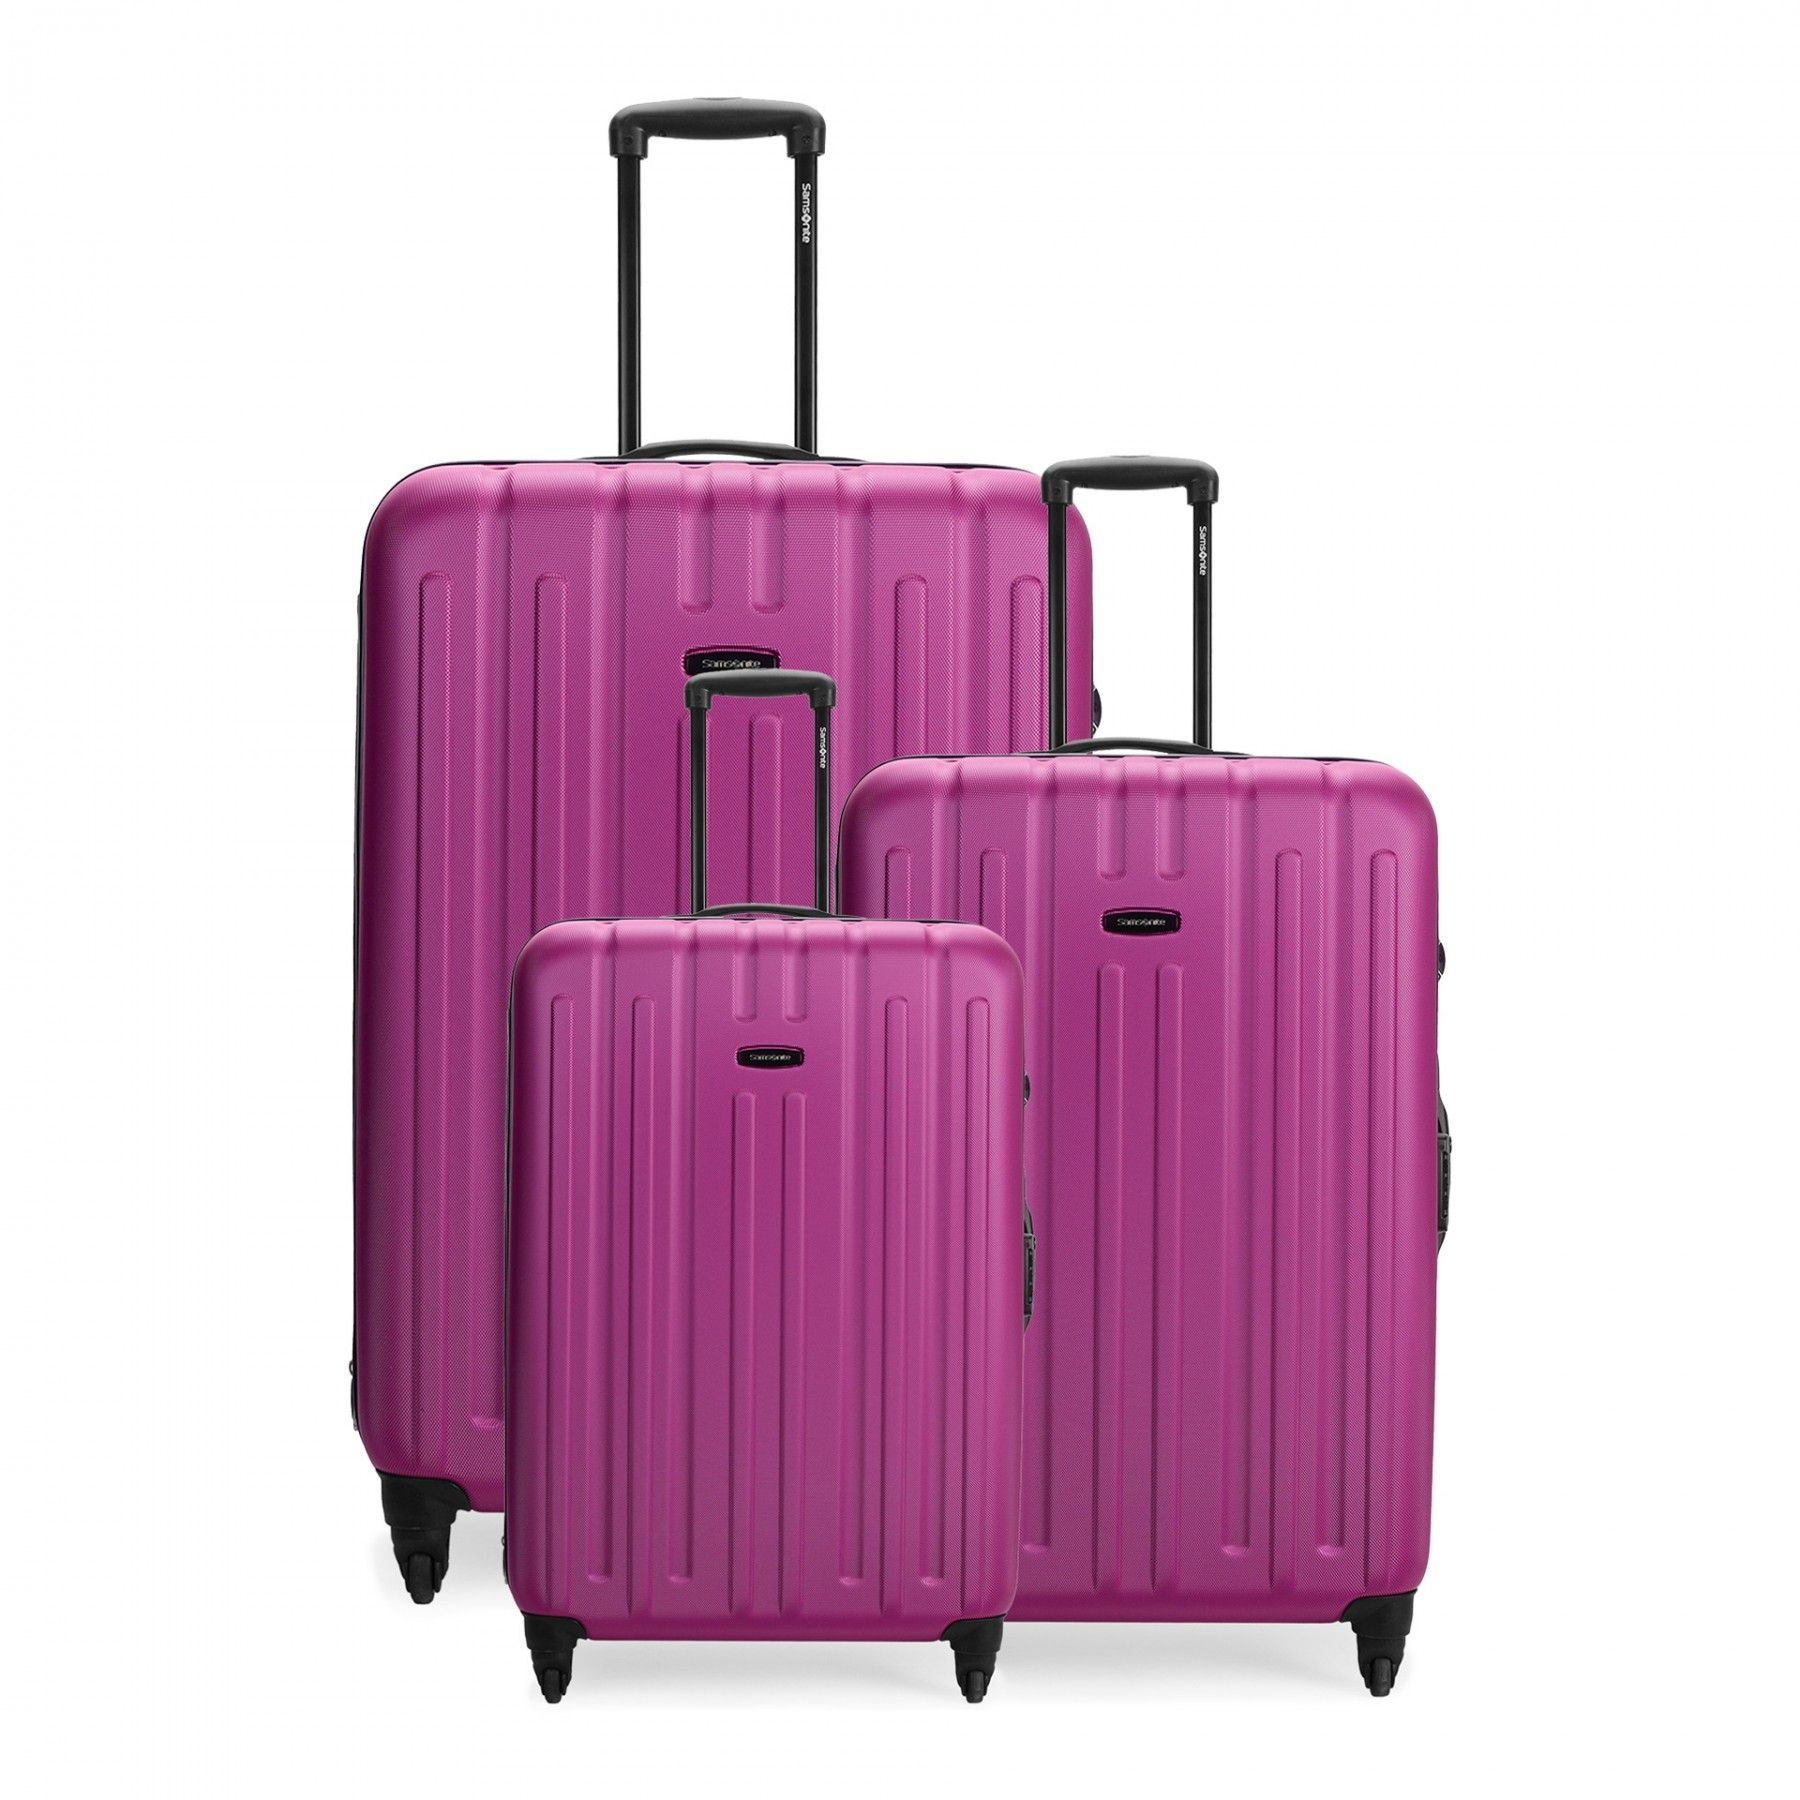 Samsonite Pink Luggage Set This Samsonite staple features four ...